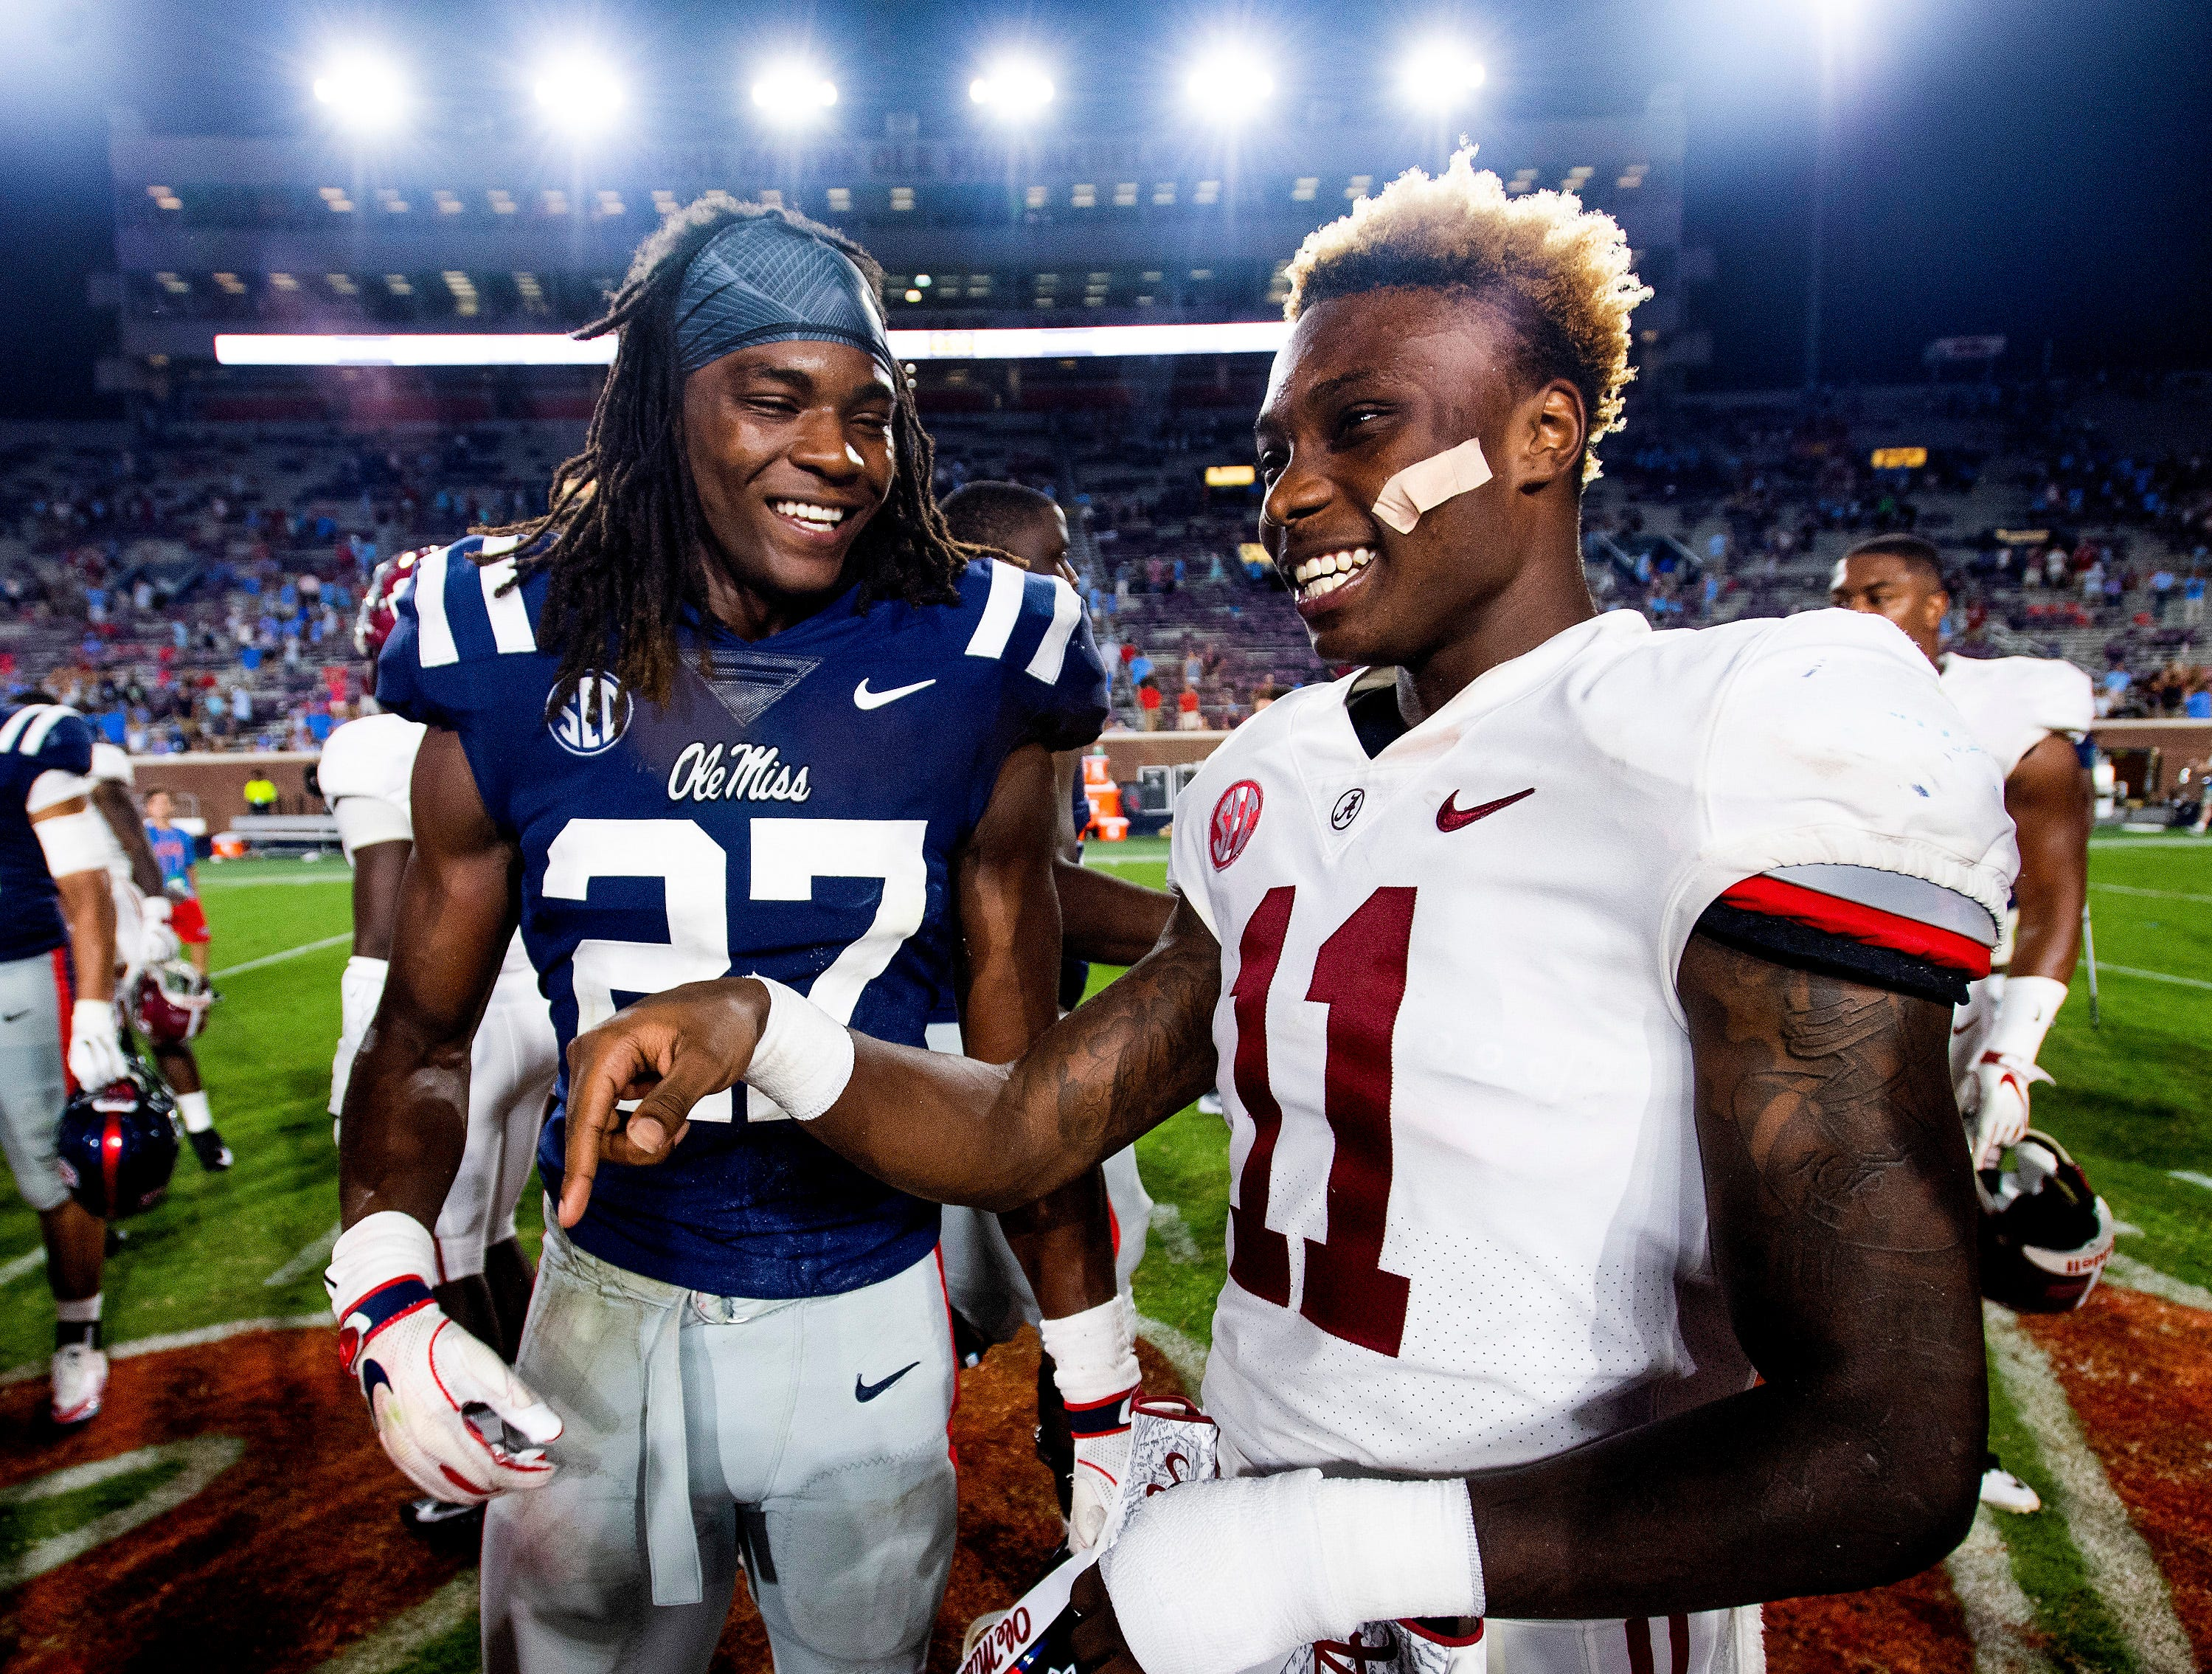 Brothers, Ole Miss linebacker Kevontae' Ruggs (27)  and Alabama wide receiver Henry Ruggs, III, (11), chat after their game in Oxford, Ms., on Saturday September 15, 2018.